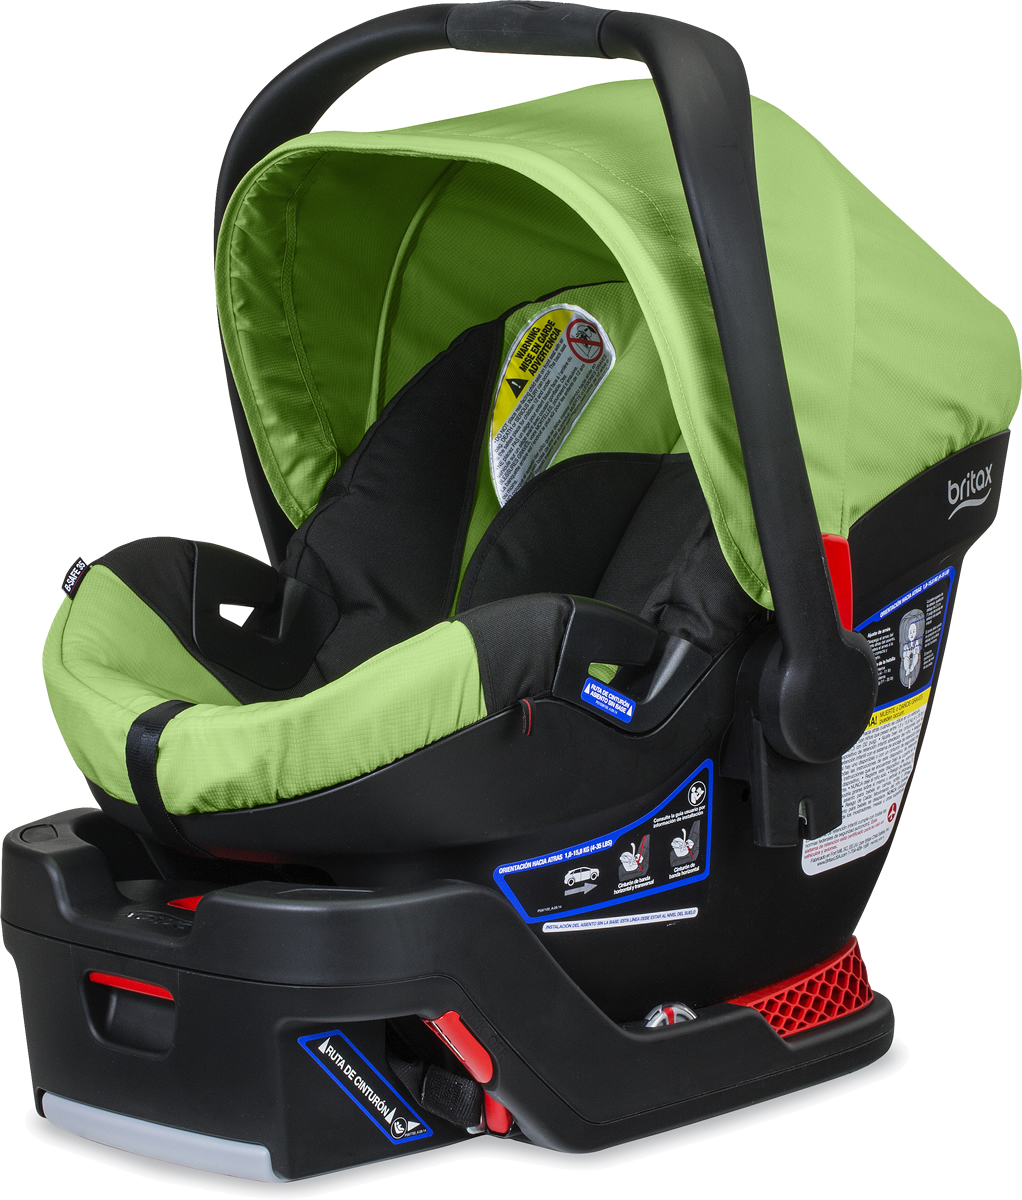 Britax B-Safe 35 Infant Car Seat - Meadow